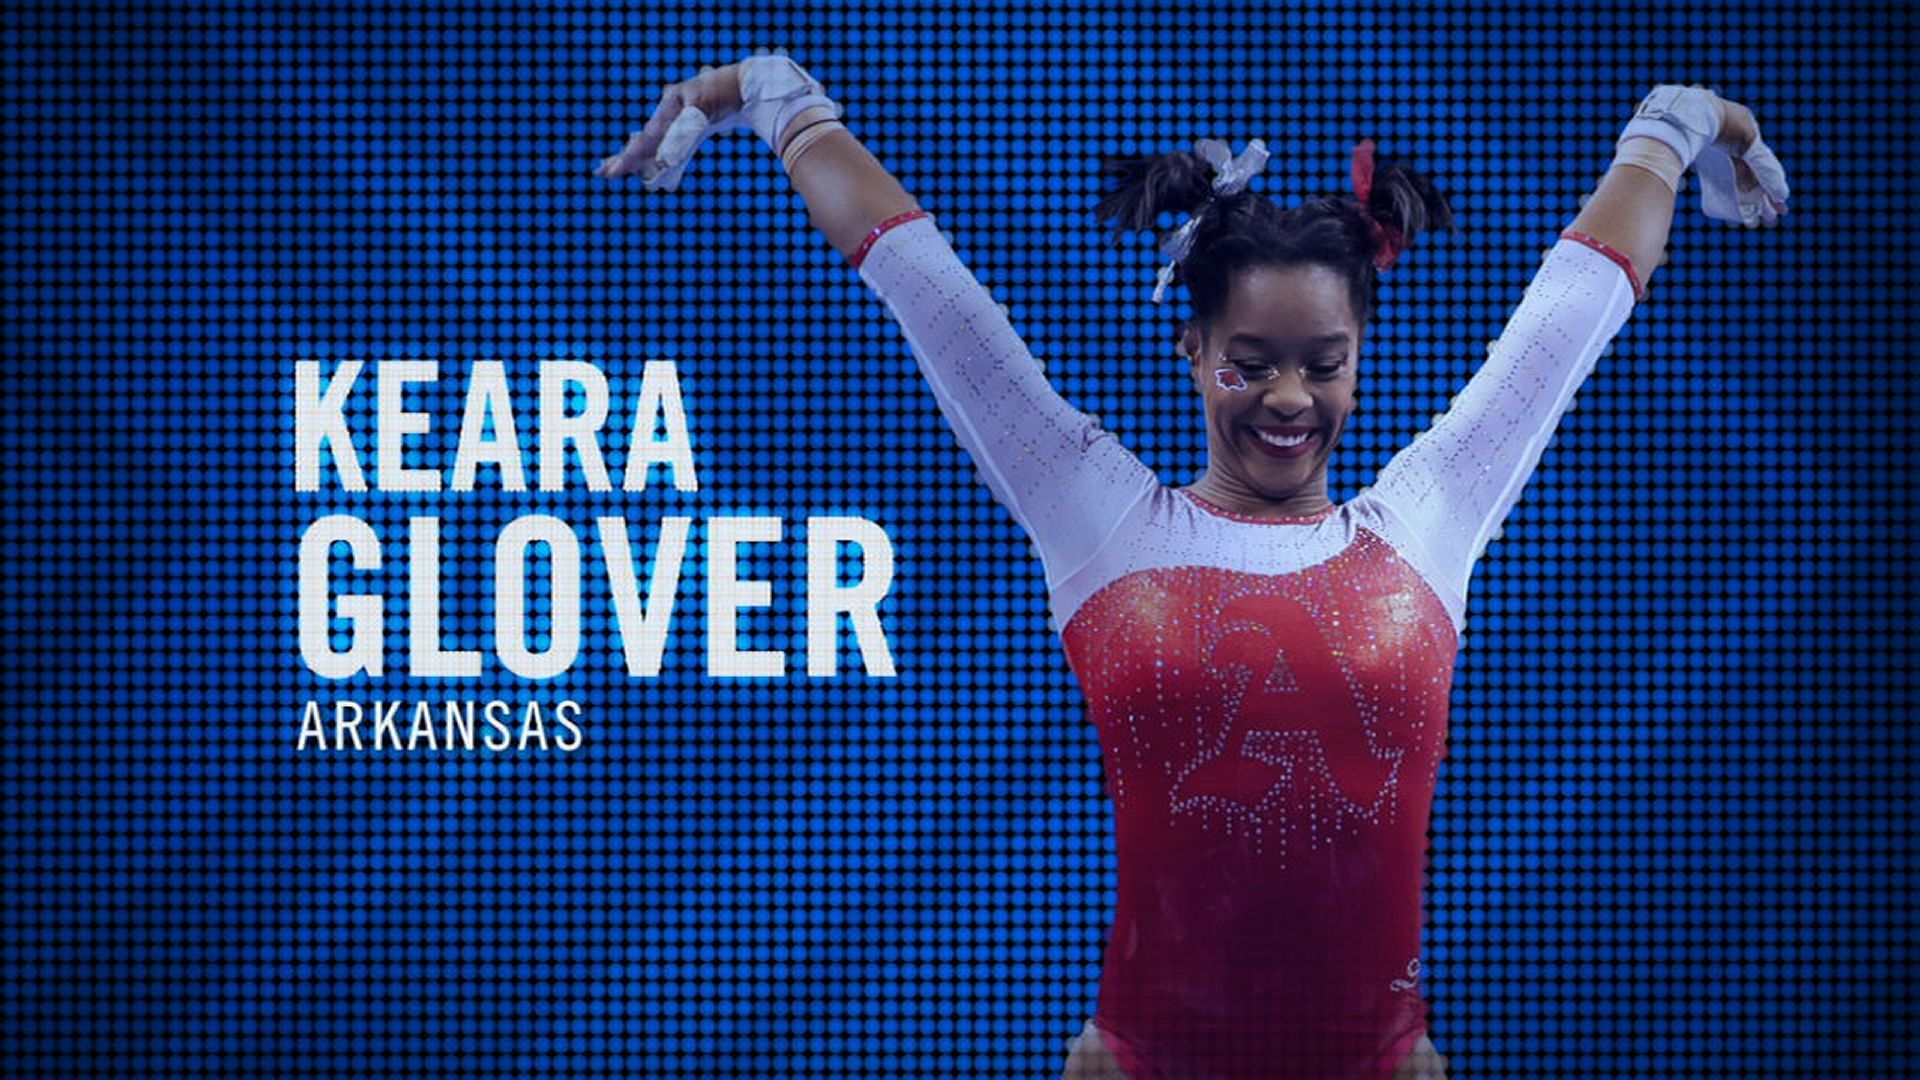 I am the SEC: Arkansas' Keara Glover